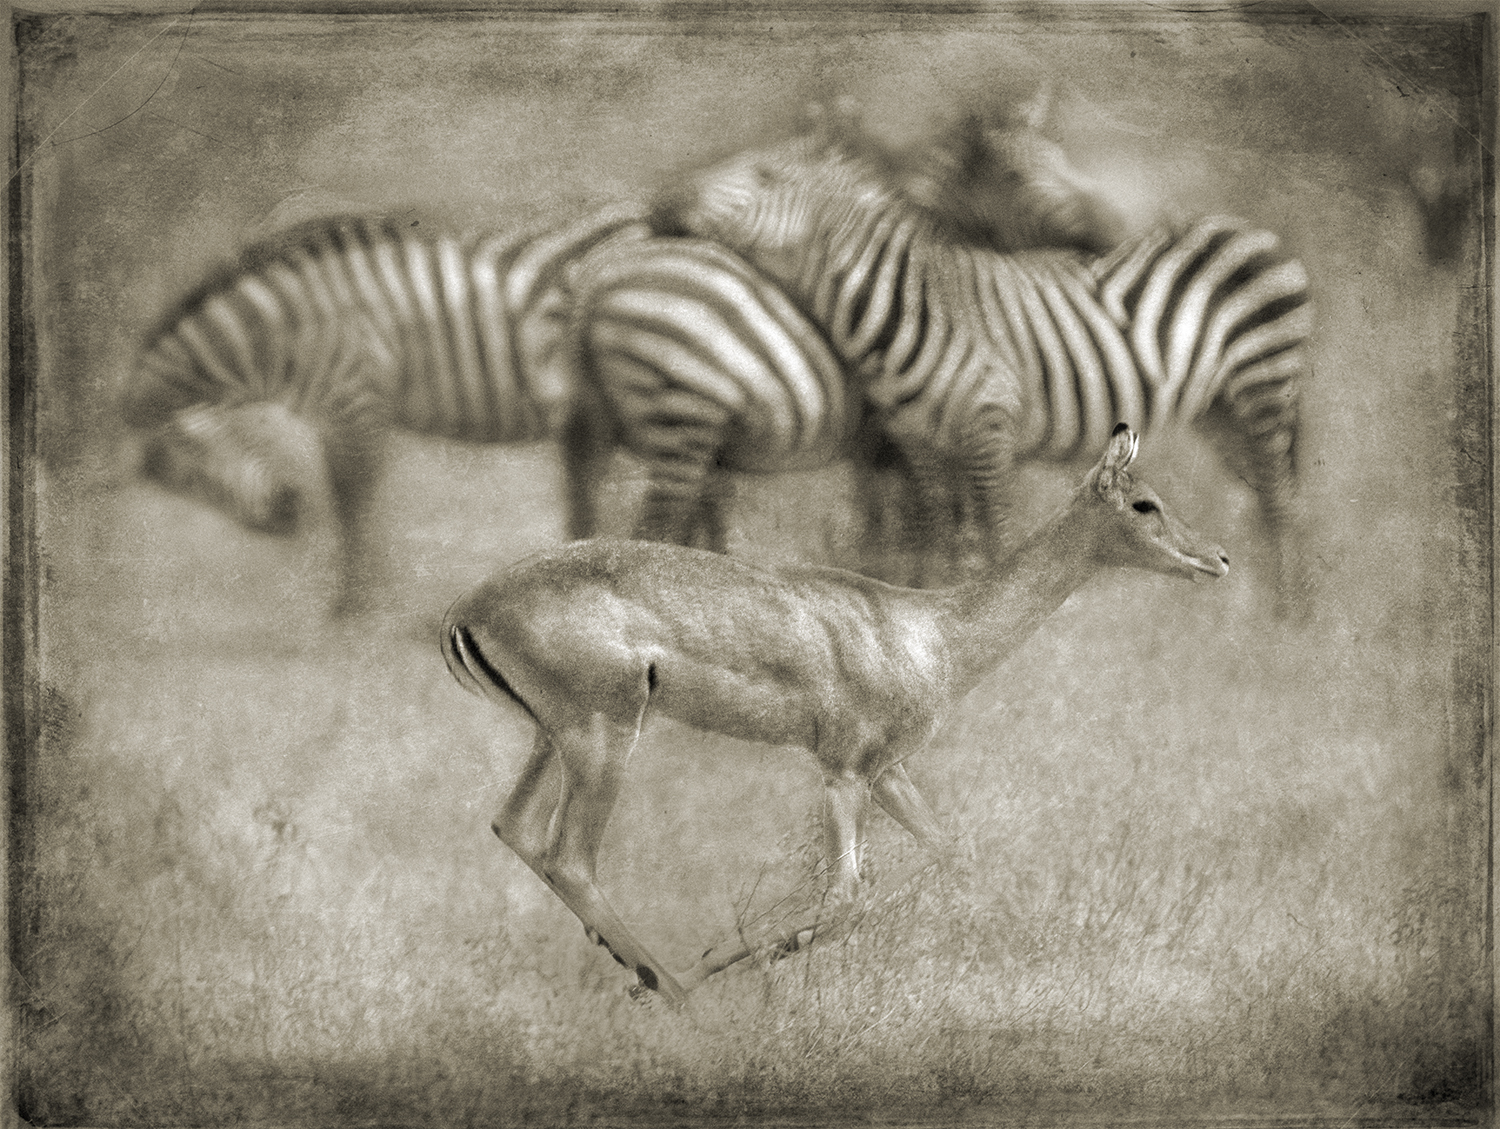 Impala Dash with Zebras copy.jpg